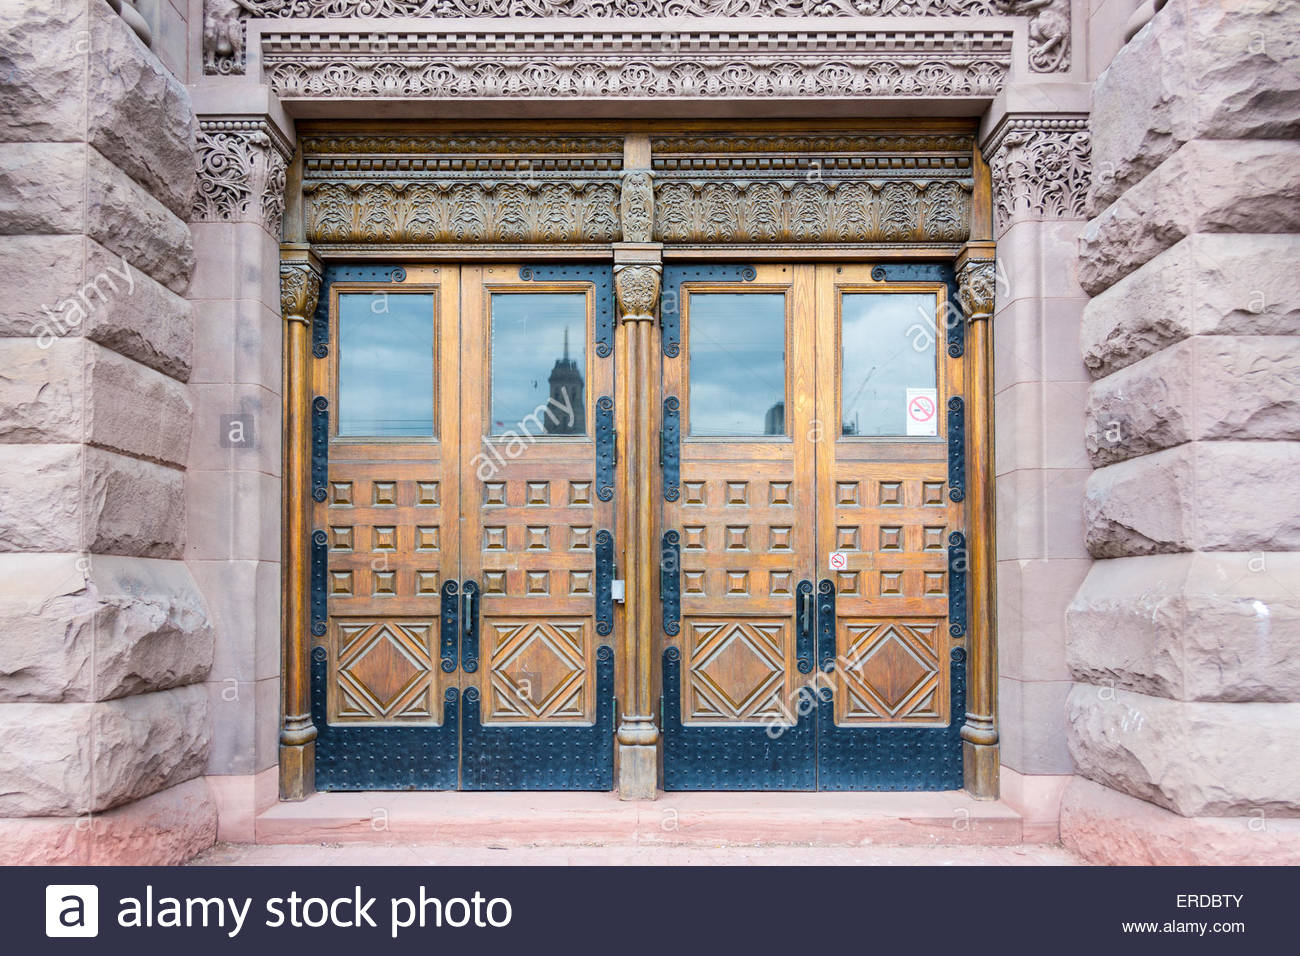 Beautiful old front doors on the facade of the building old city hall the building has a variation of romanesque revival archit